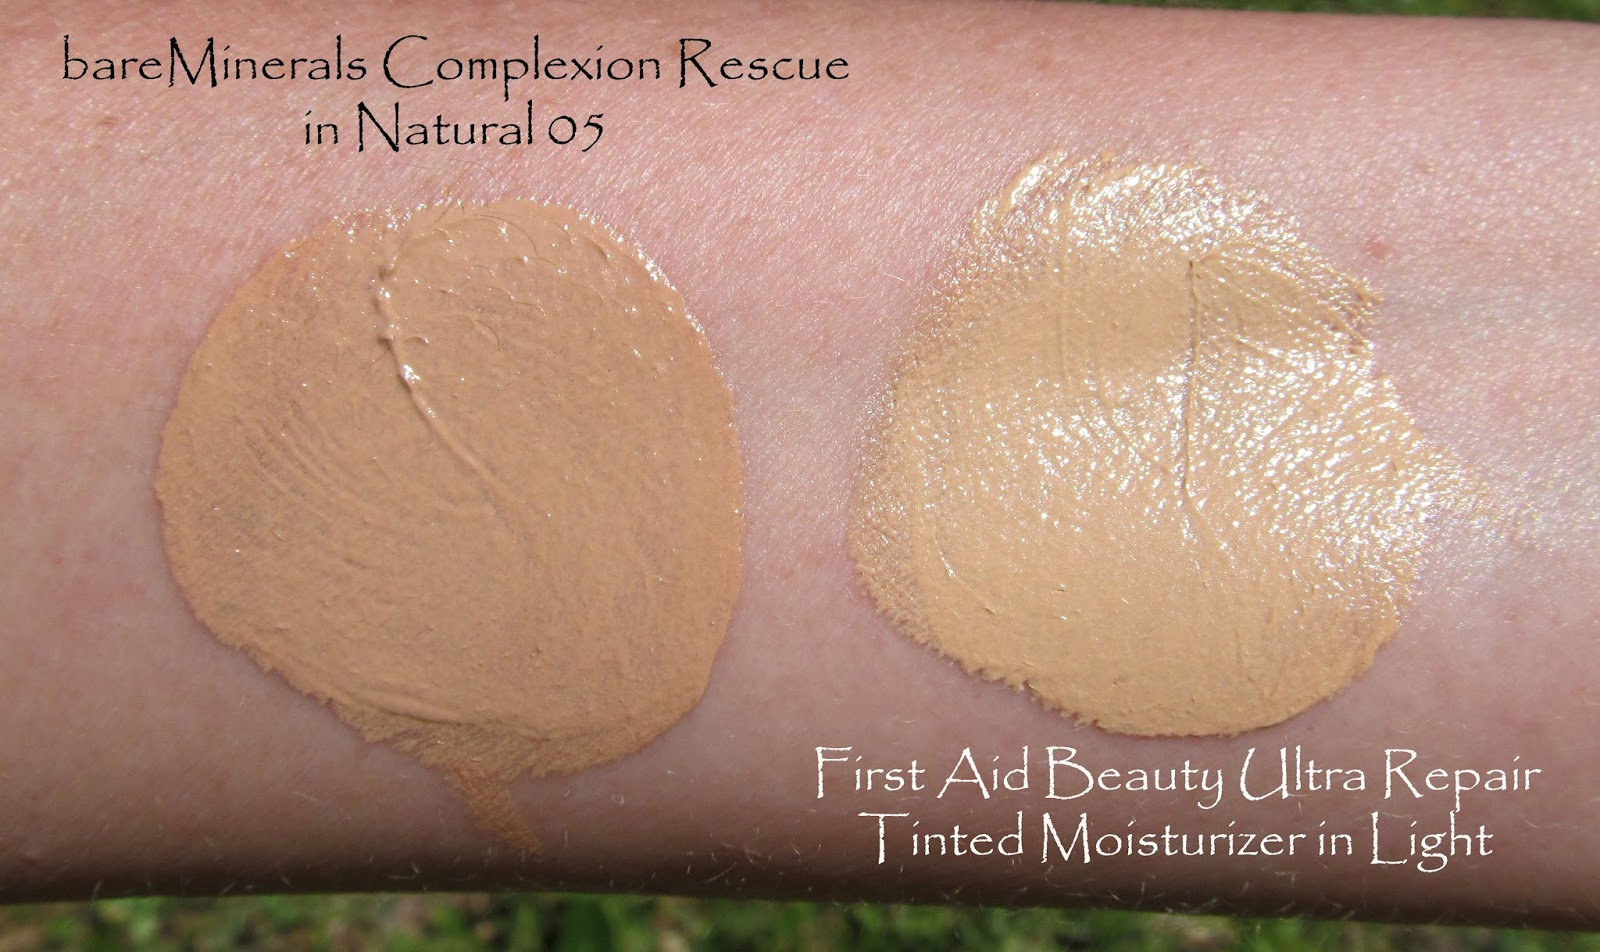 Ultra Repair Tinted Moisturizer by First Aid Beauty #4